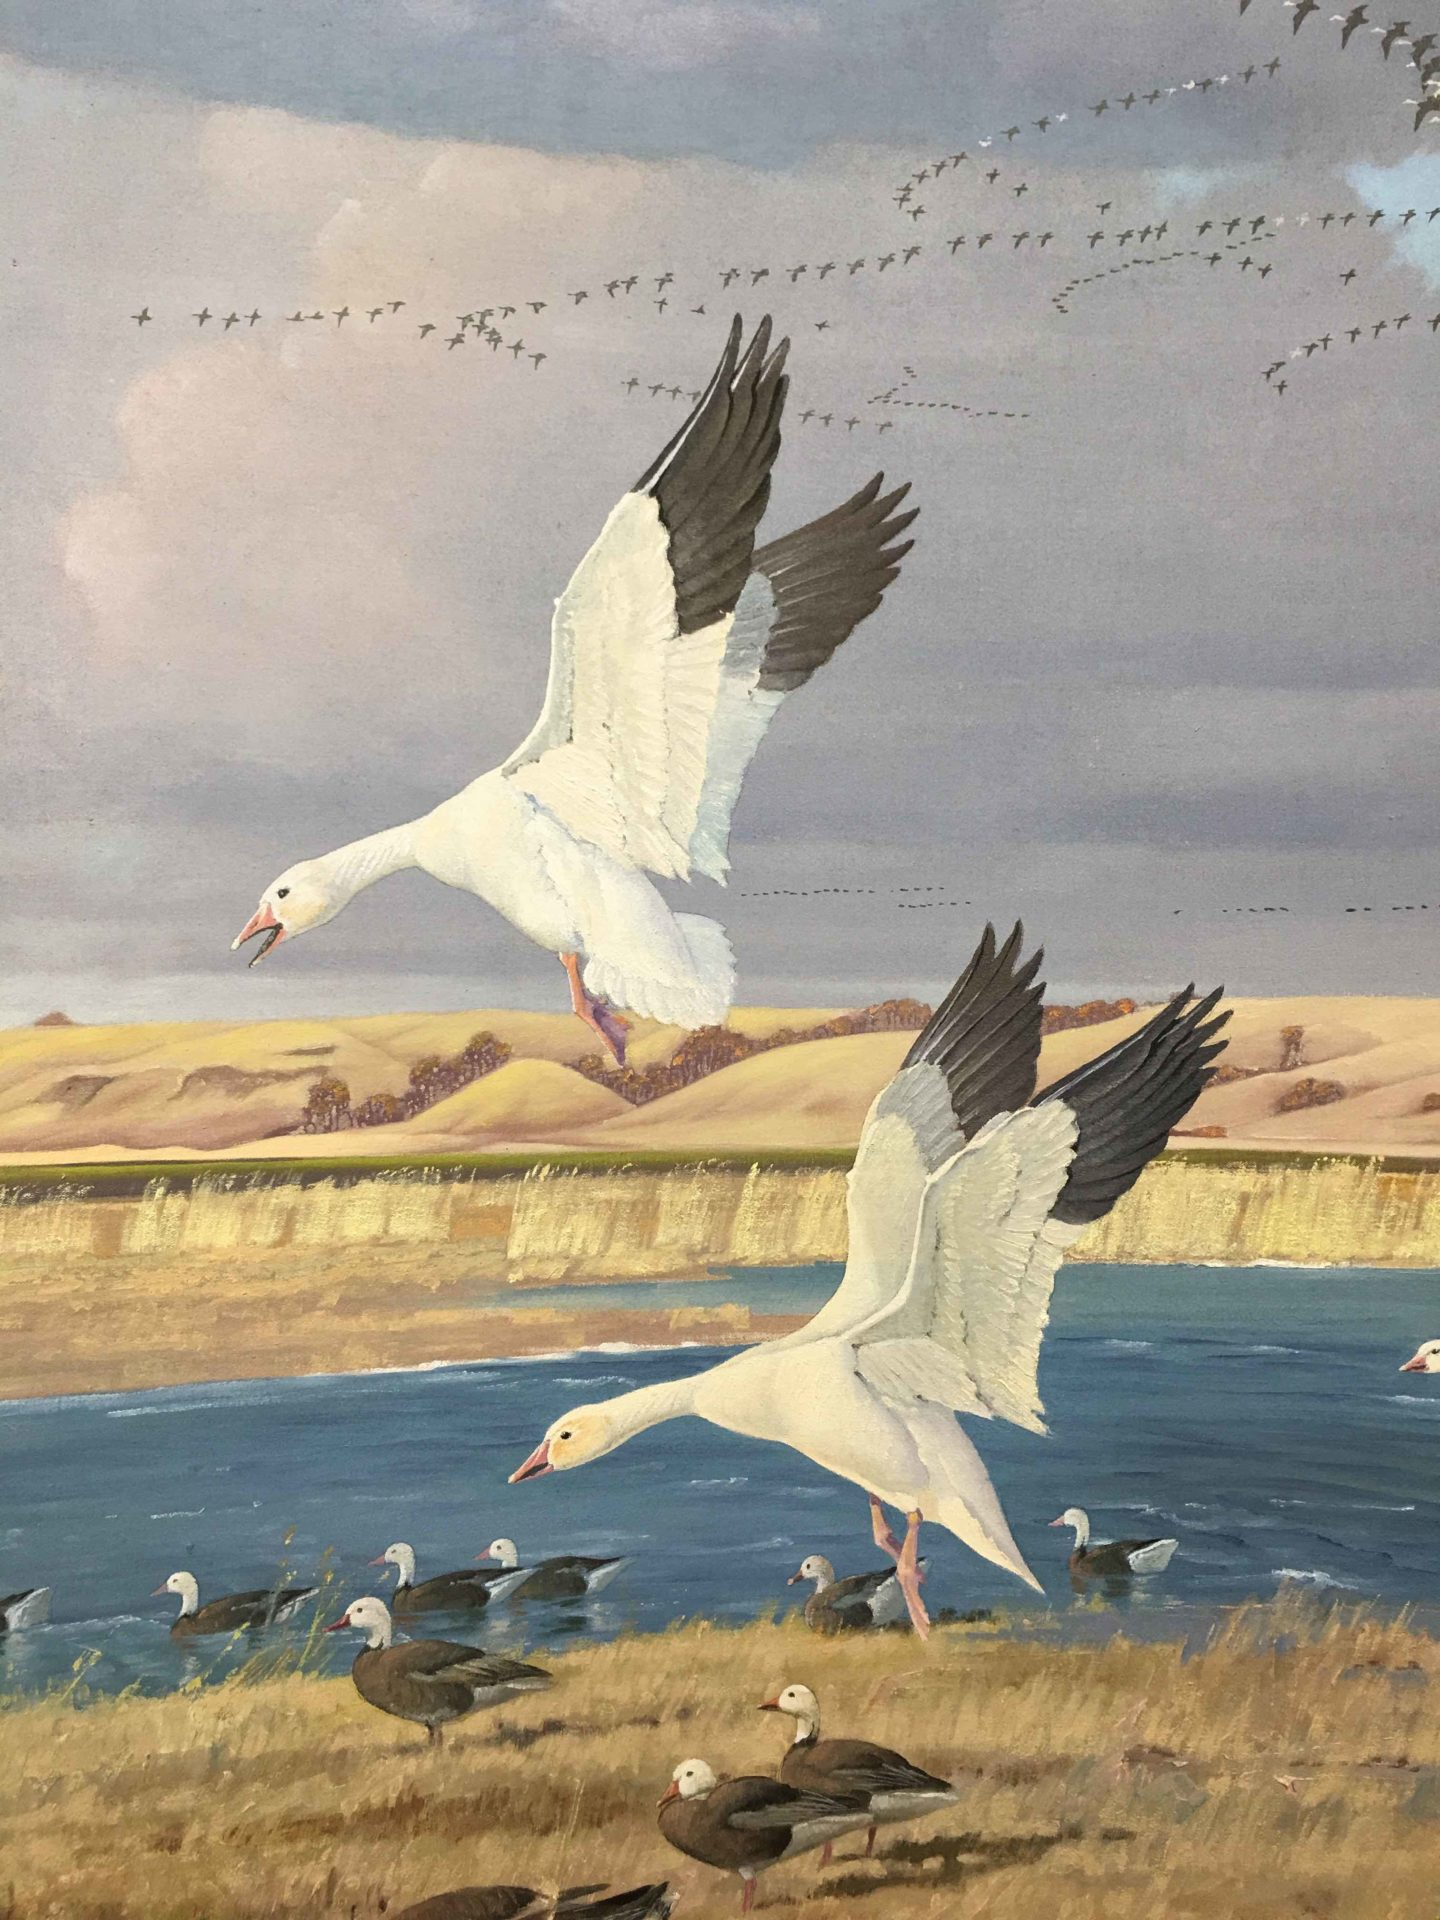 Closeup of Francis Lee Jaques painting of geese at Lake Traverse, showing 2 geese landing on the lake